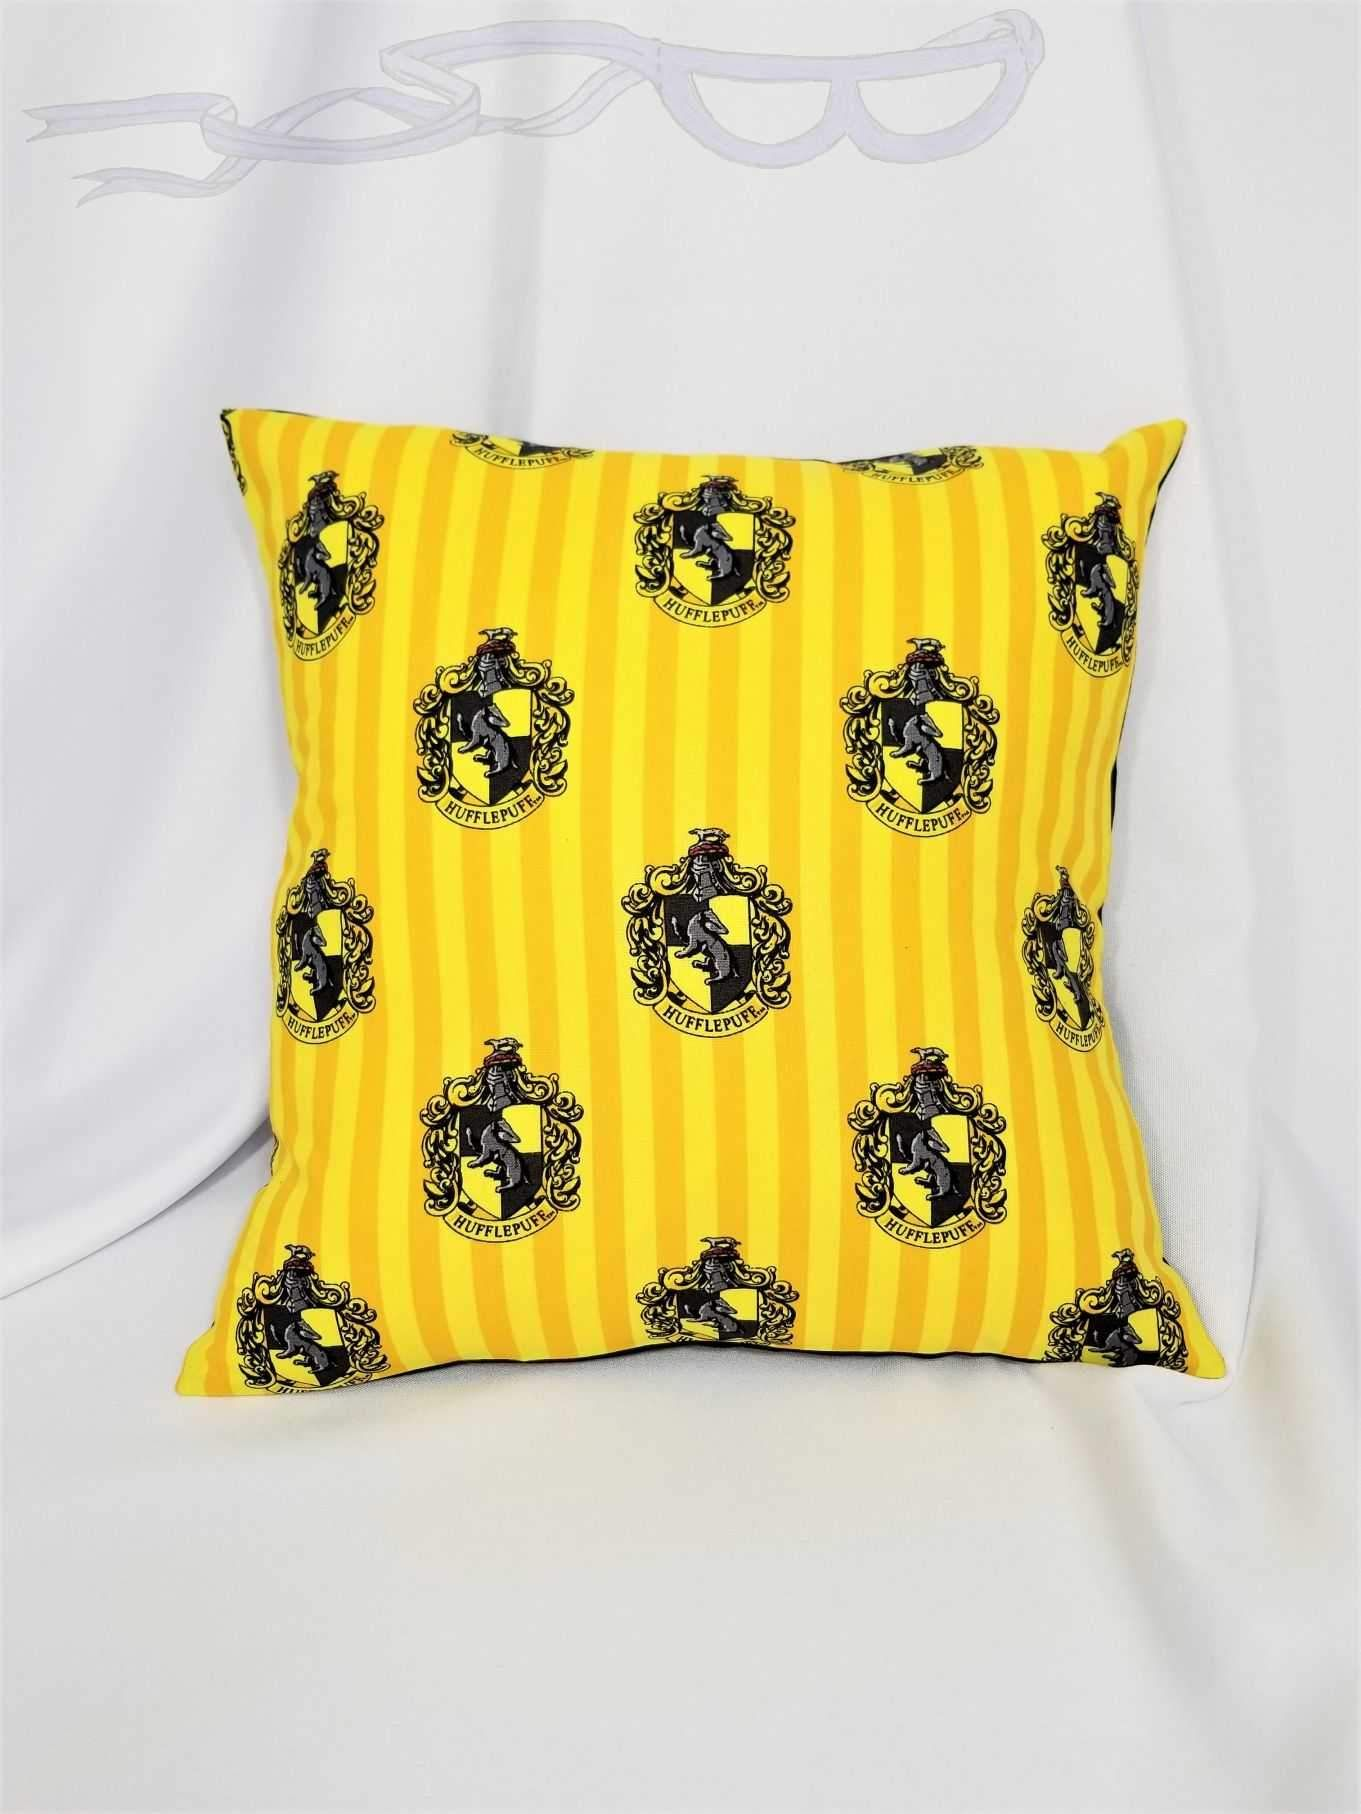 Hufflepuff House fabric made into a cotton throw pillow cover - Words